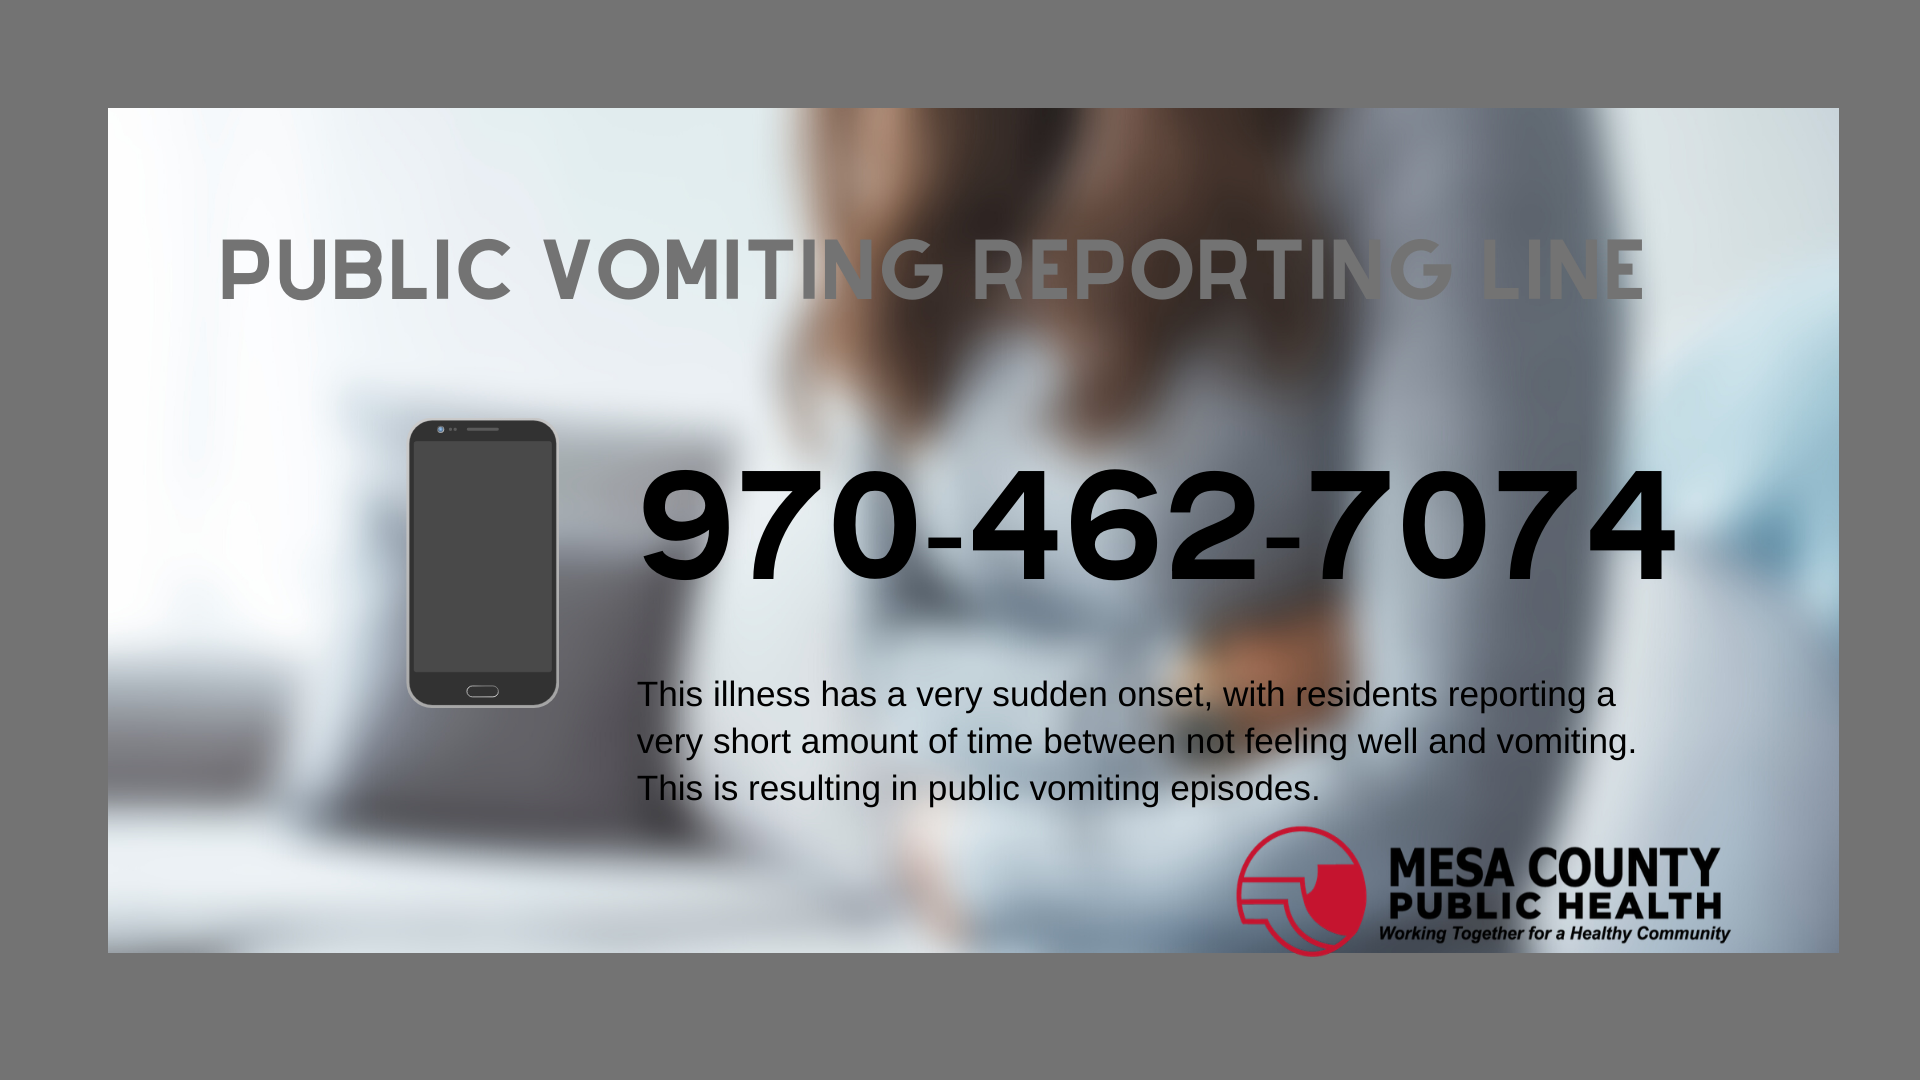 Public Reporting Line Provides Valuable Insight on Illness in Mesa County